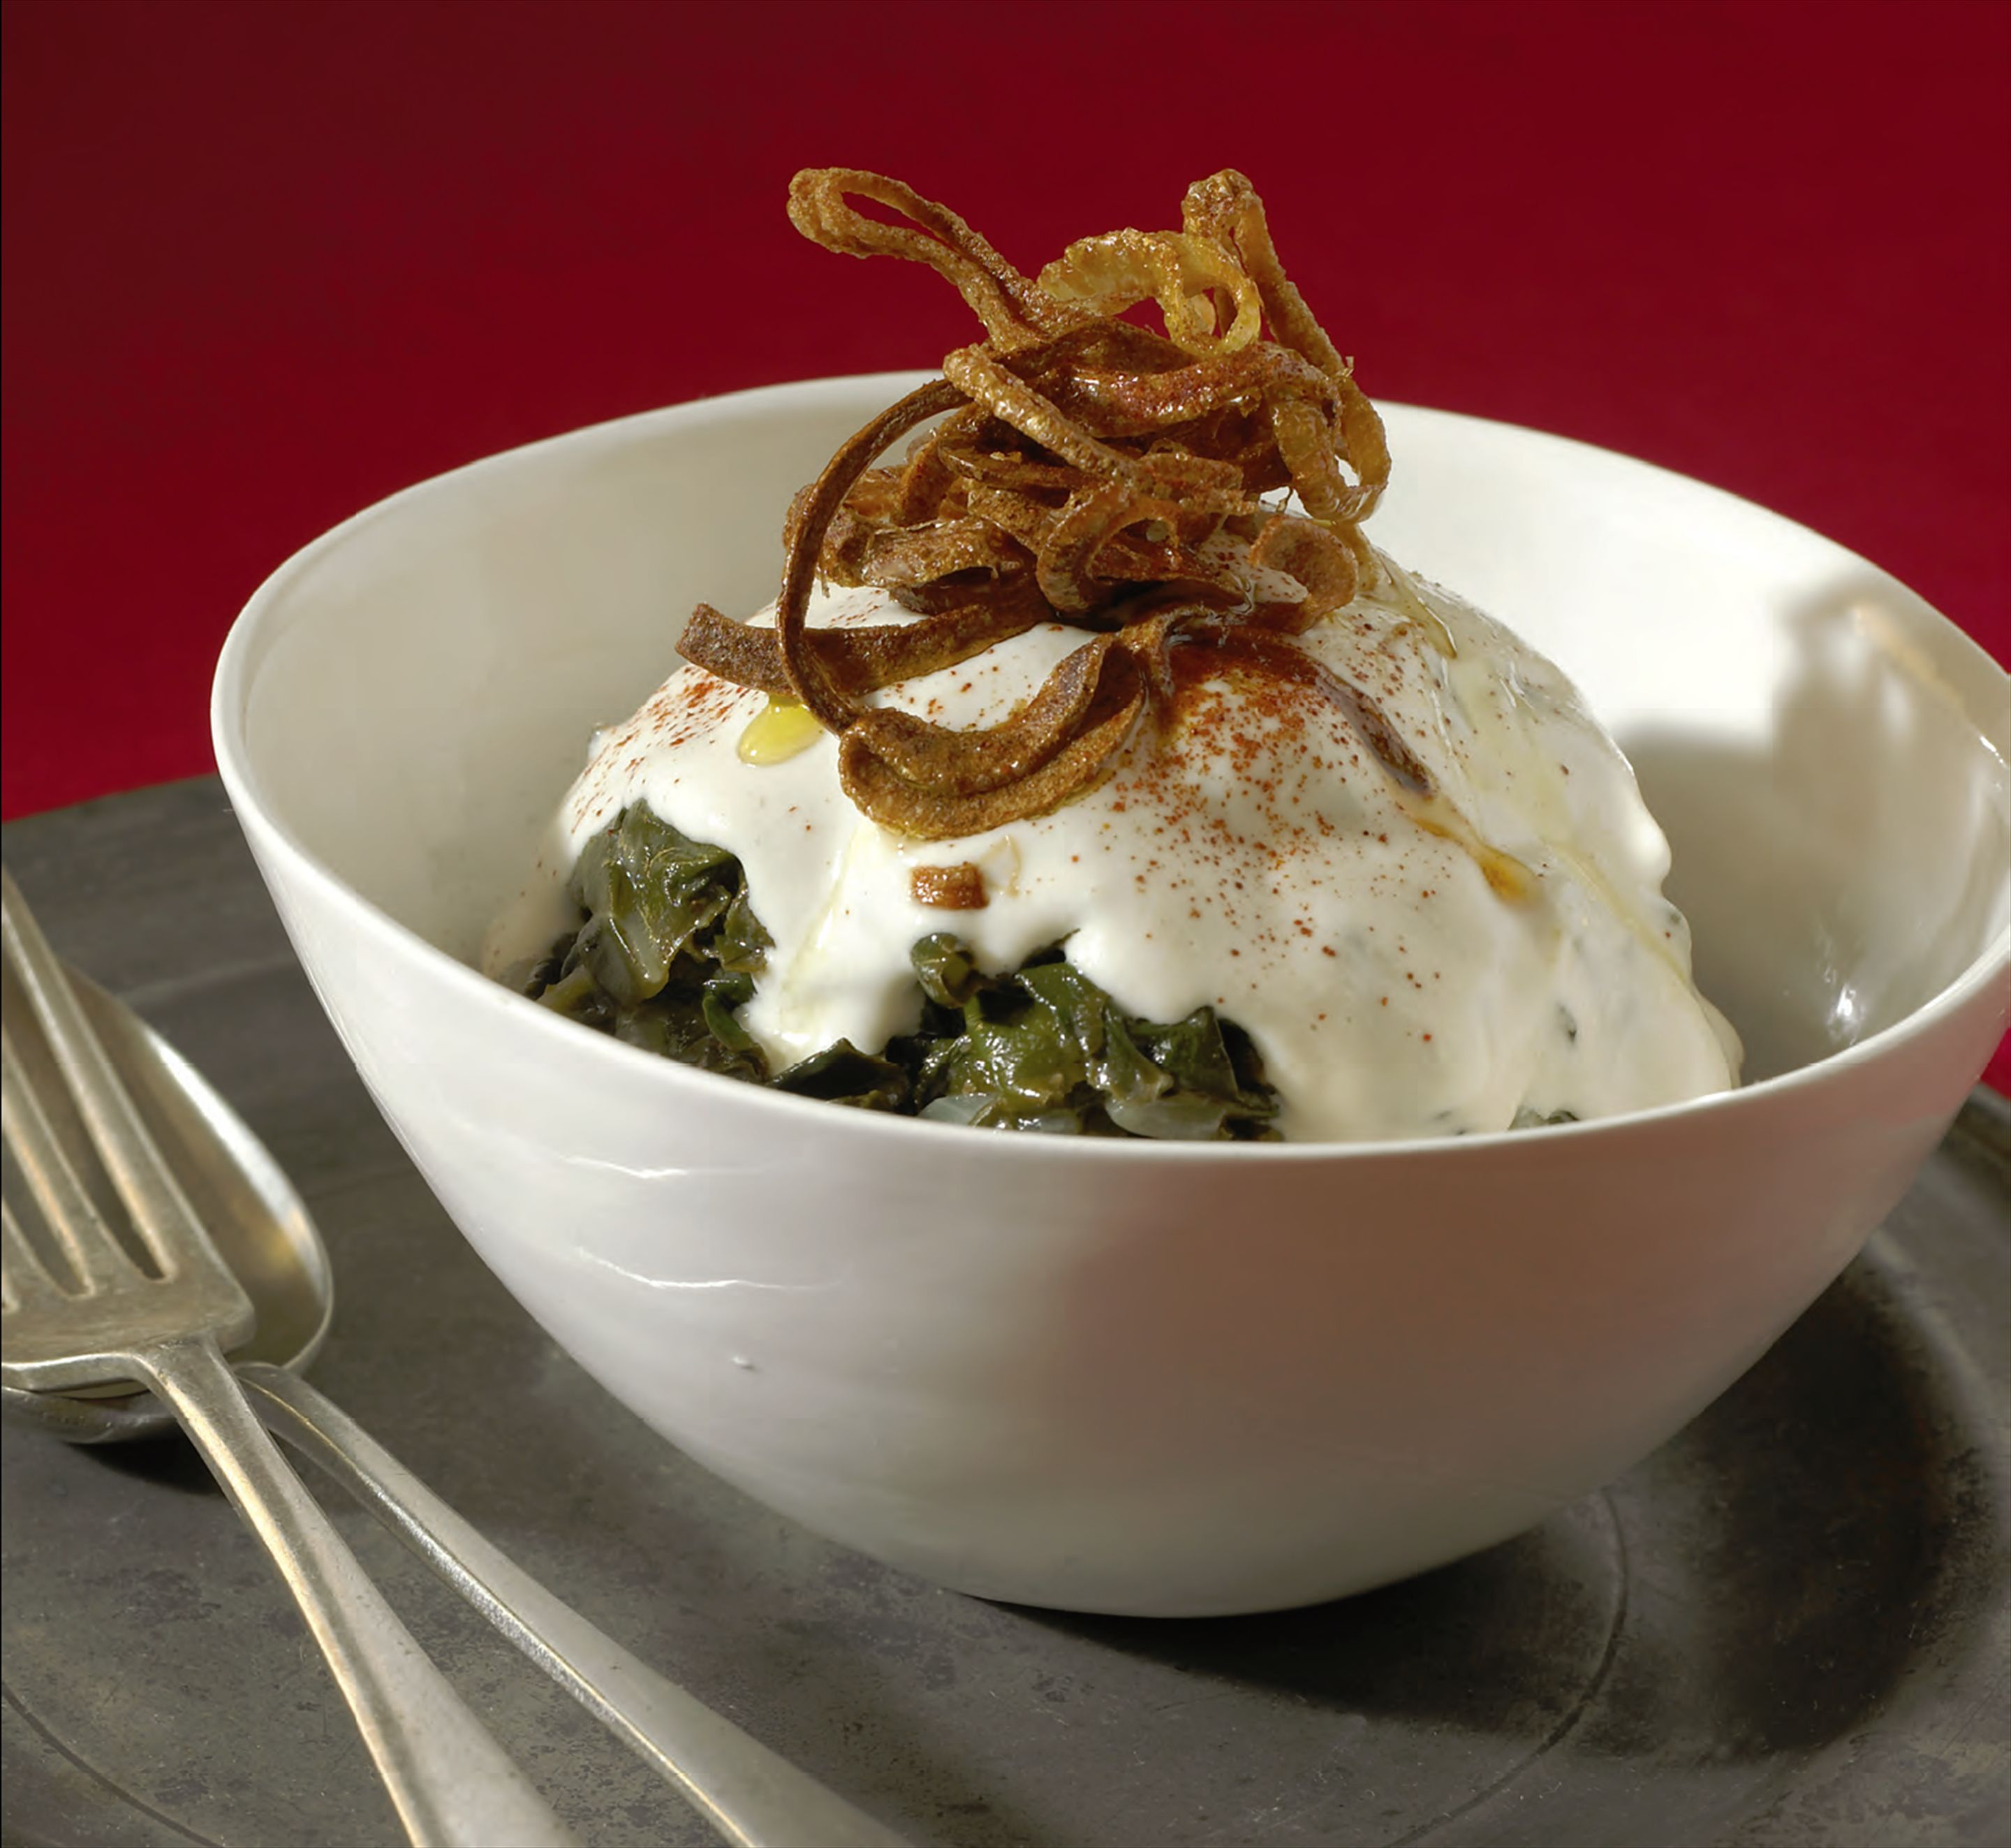 Braised silverbeet with crisp fried onions and tahini sauce